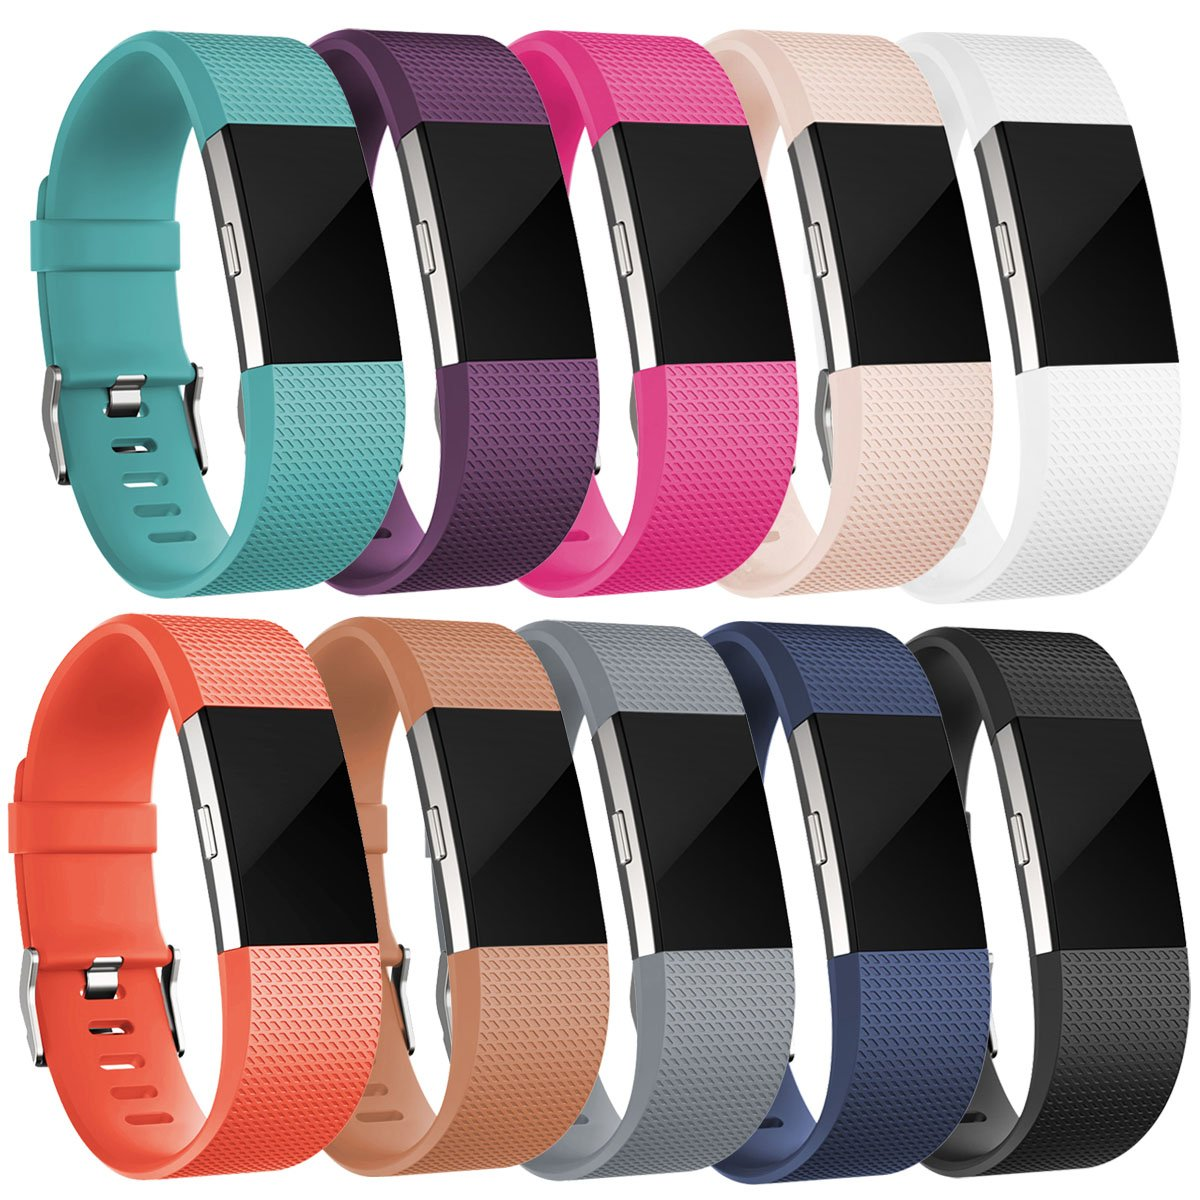 For Fitbit Charge 2 Bands, Humenn Replacement Accessory Sport Band for Fitbit Charge 2 HR Pack 10